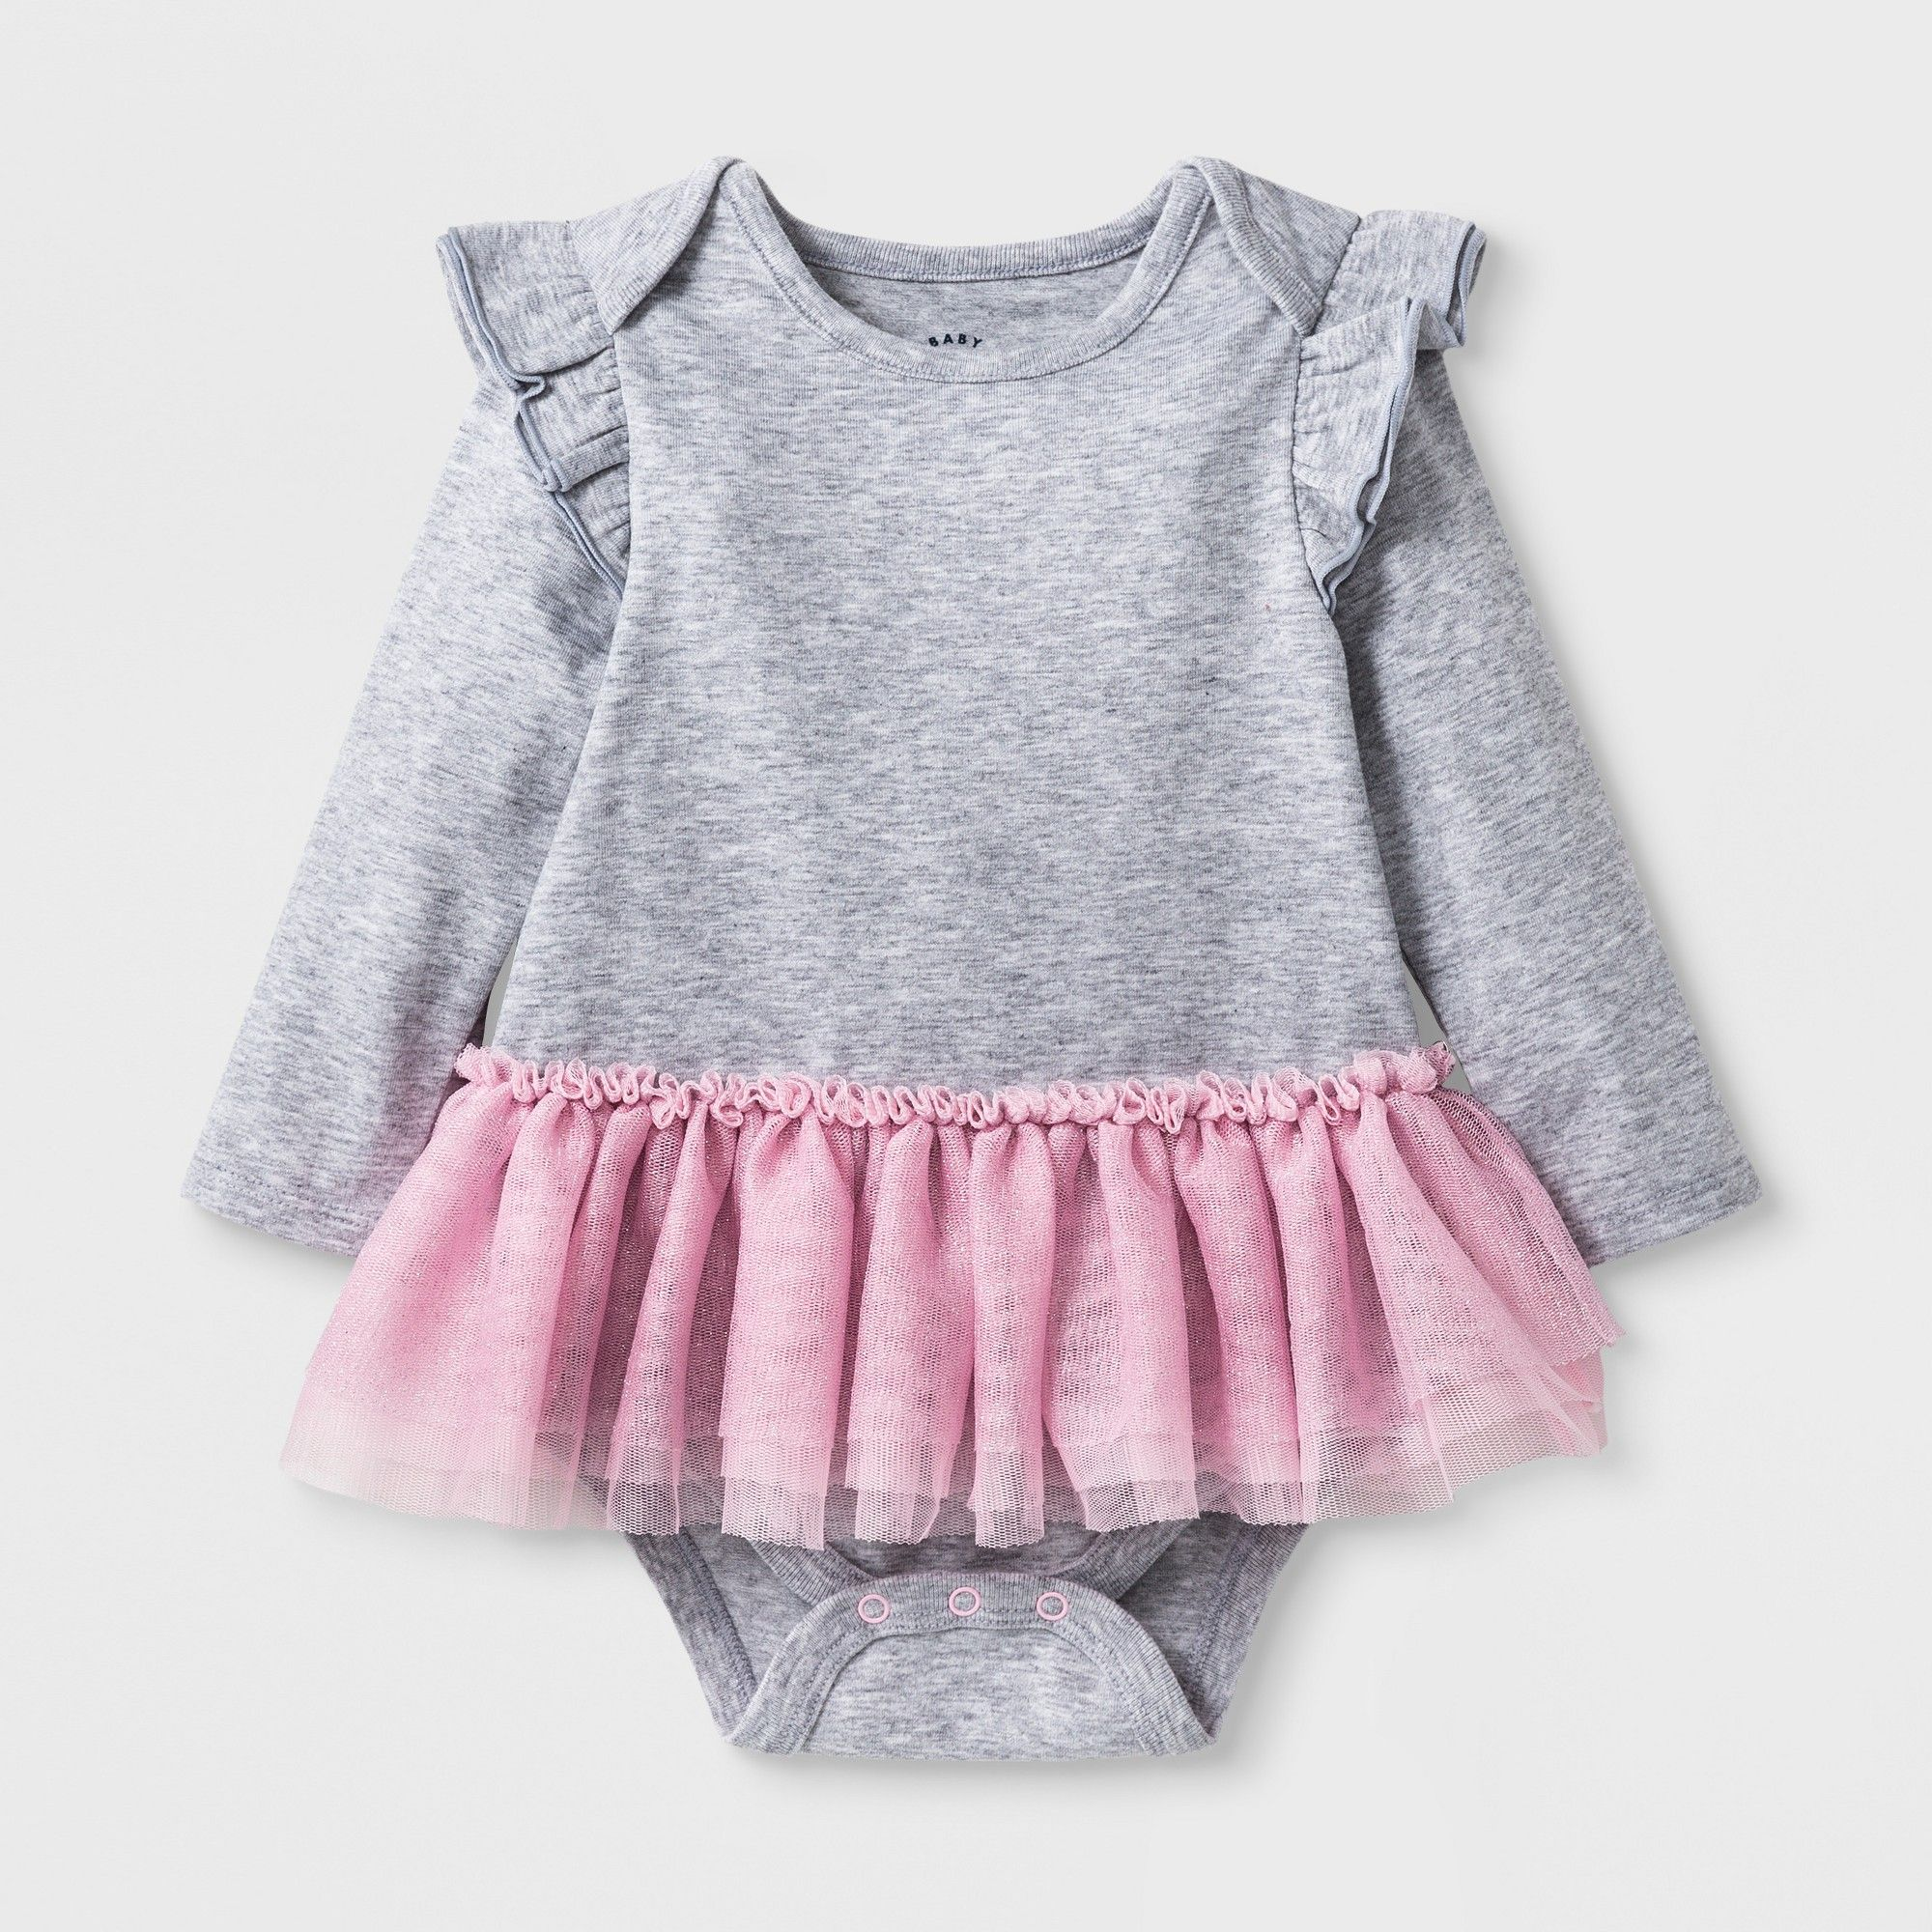 45808cbec0 Baby Girls  Long Sleeve Tutu Bodysuit - Cat   Jack Heather Gray 0-3 ...